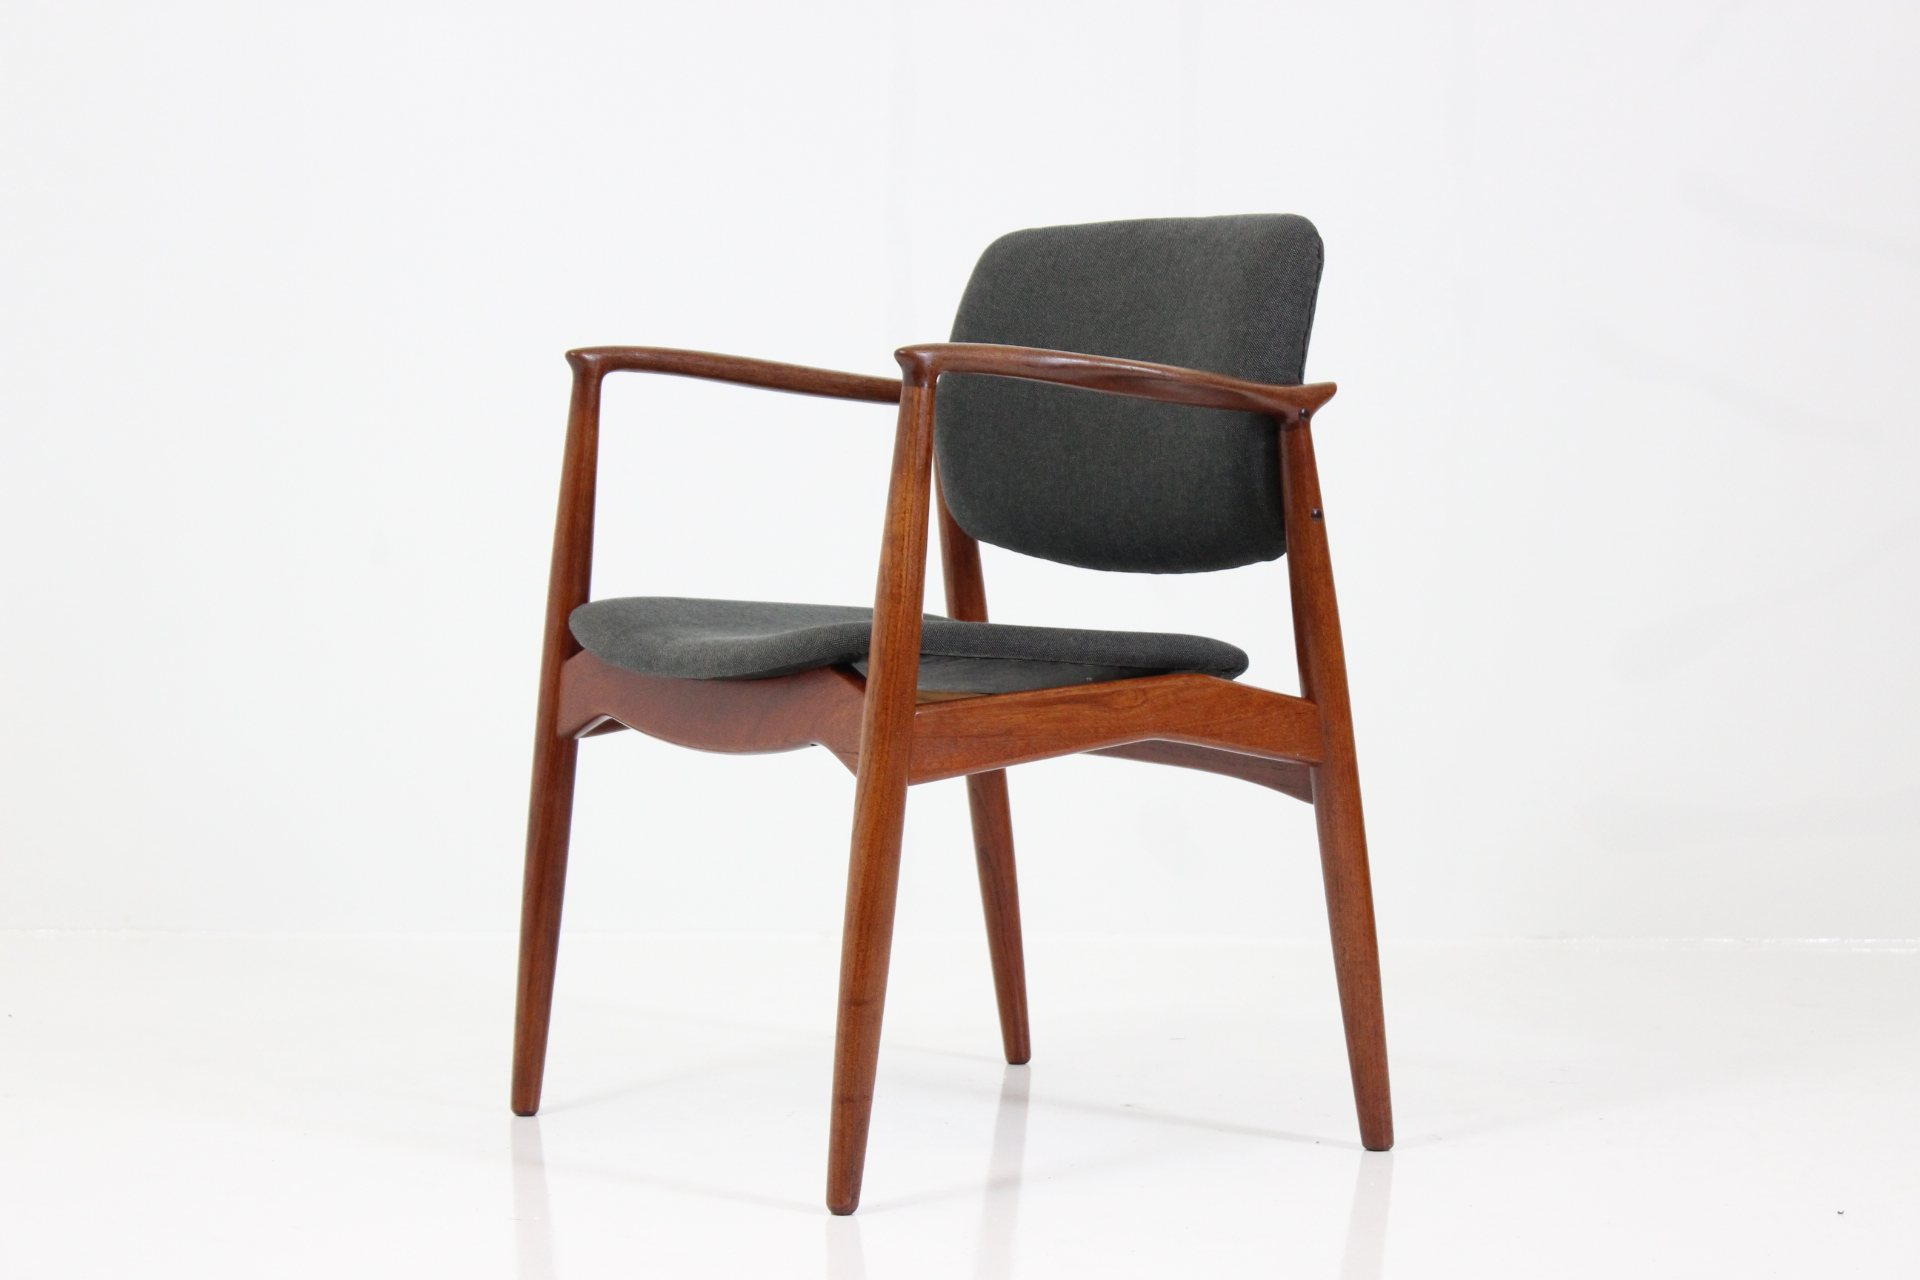 Vintage Armchair OD Serie by Erik Buck for Ørum Møbler